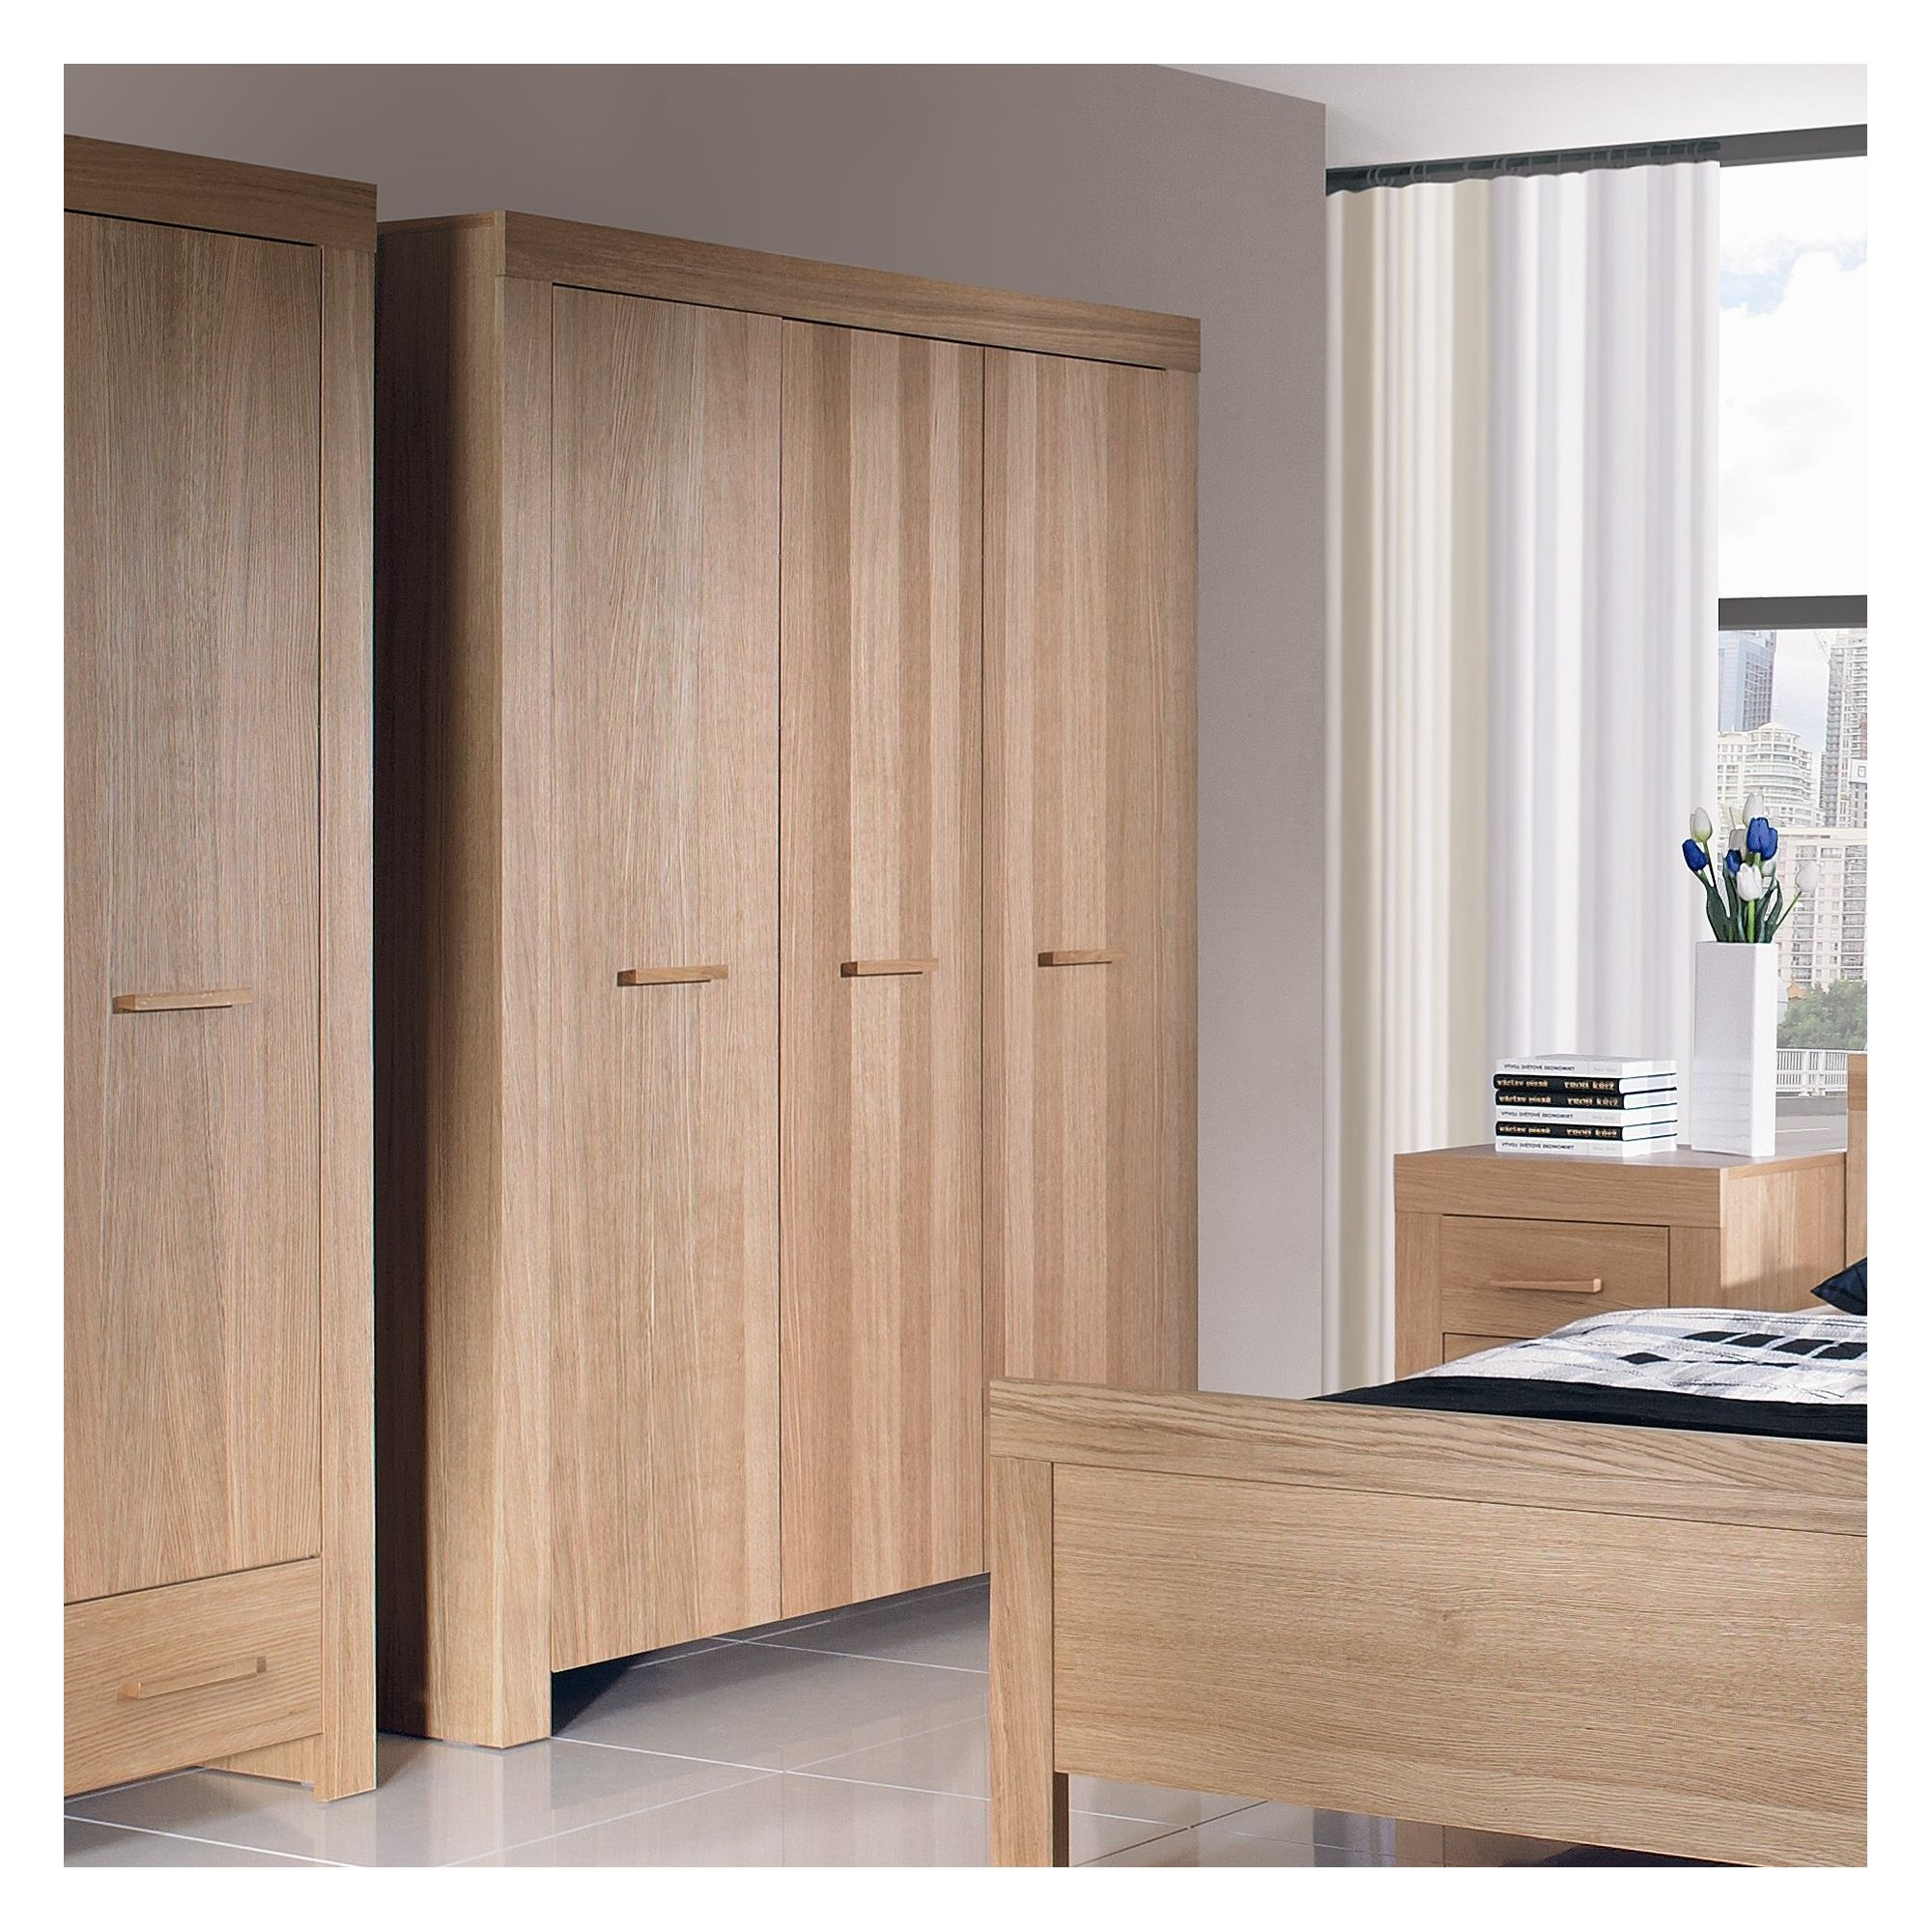 Urbane Designs Jive 3 Door Wardrobe in Oak at Tesco Direct